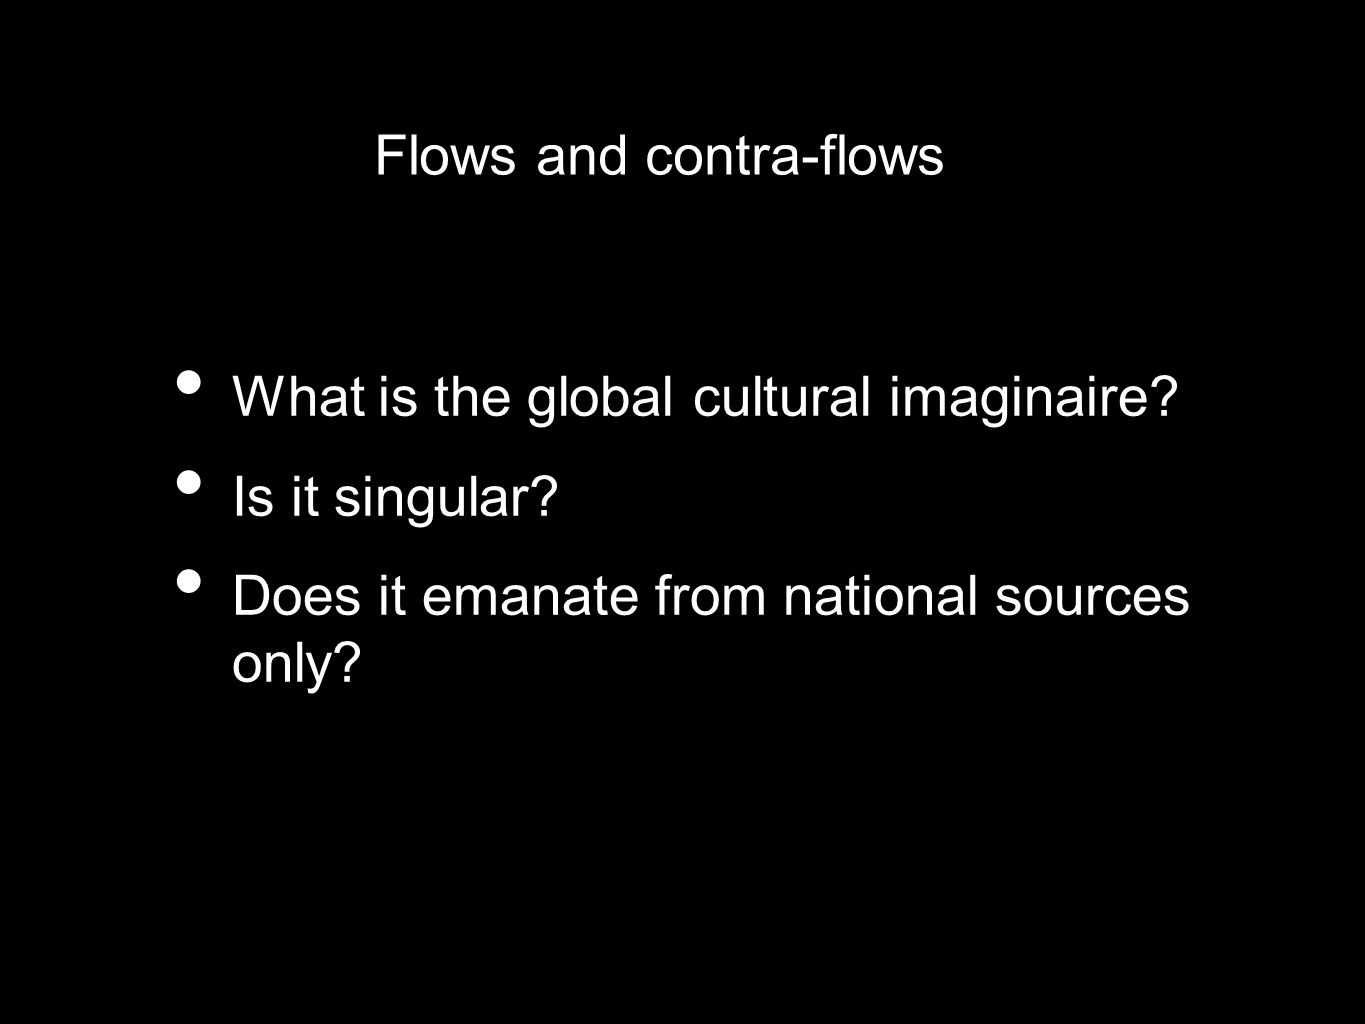 Flows and contra-flows